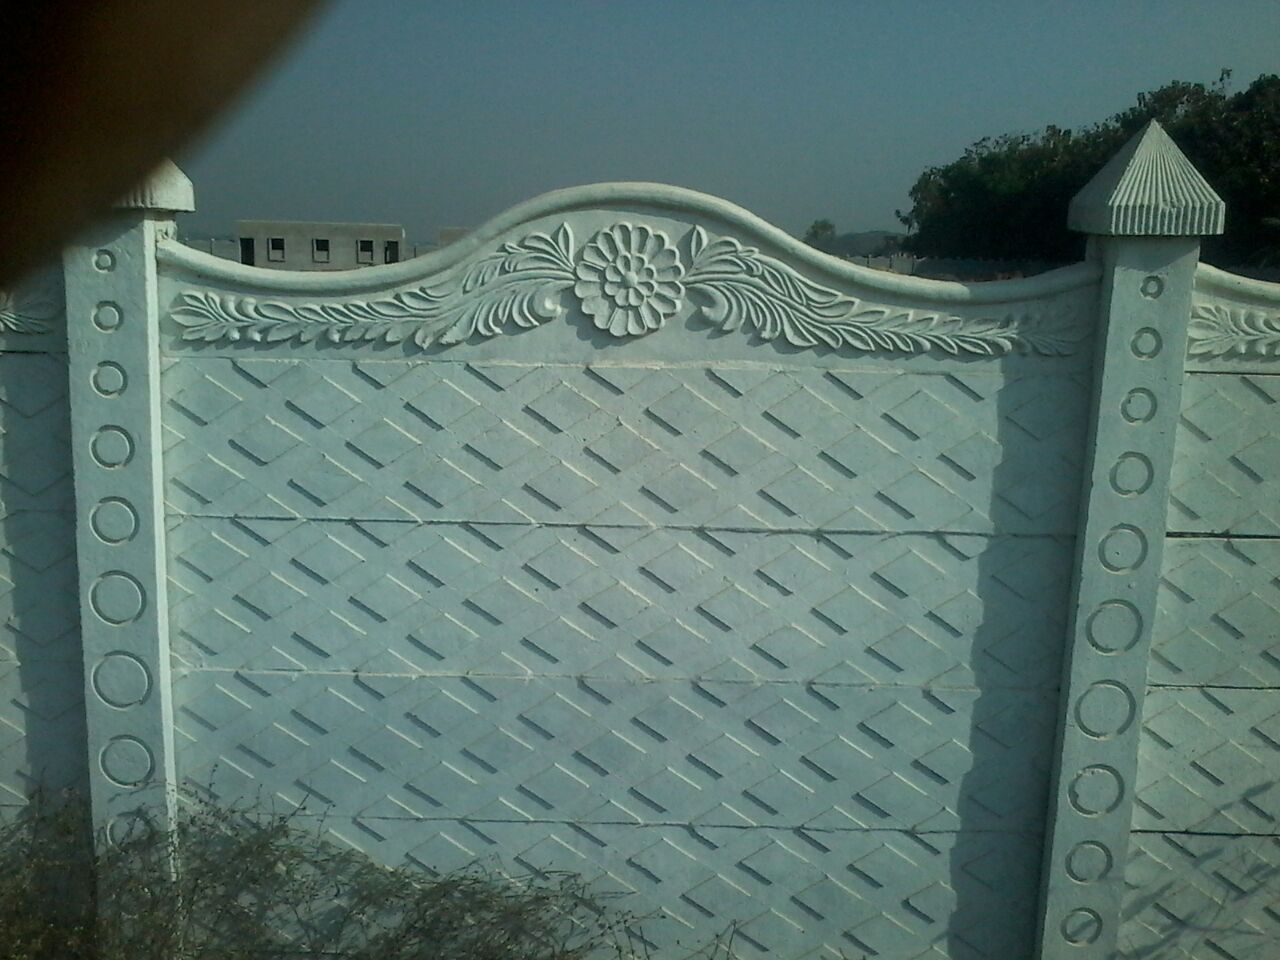 RCC Ready Made Compound Wall Manufacturer in Nagpur  We are leading the industry by manufacturing and supplying the wide range of RCC Ready Made Compound Wall.